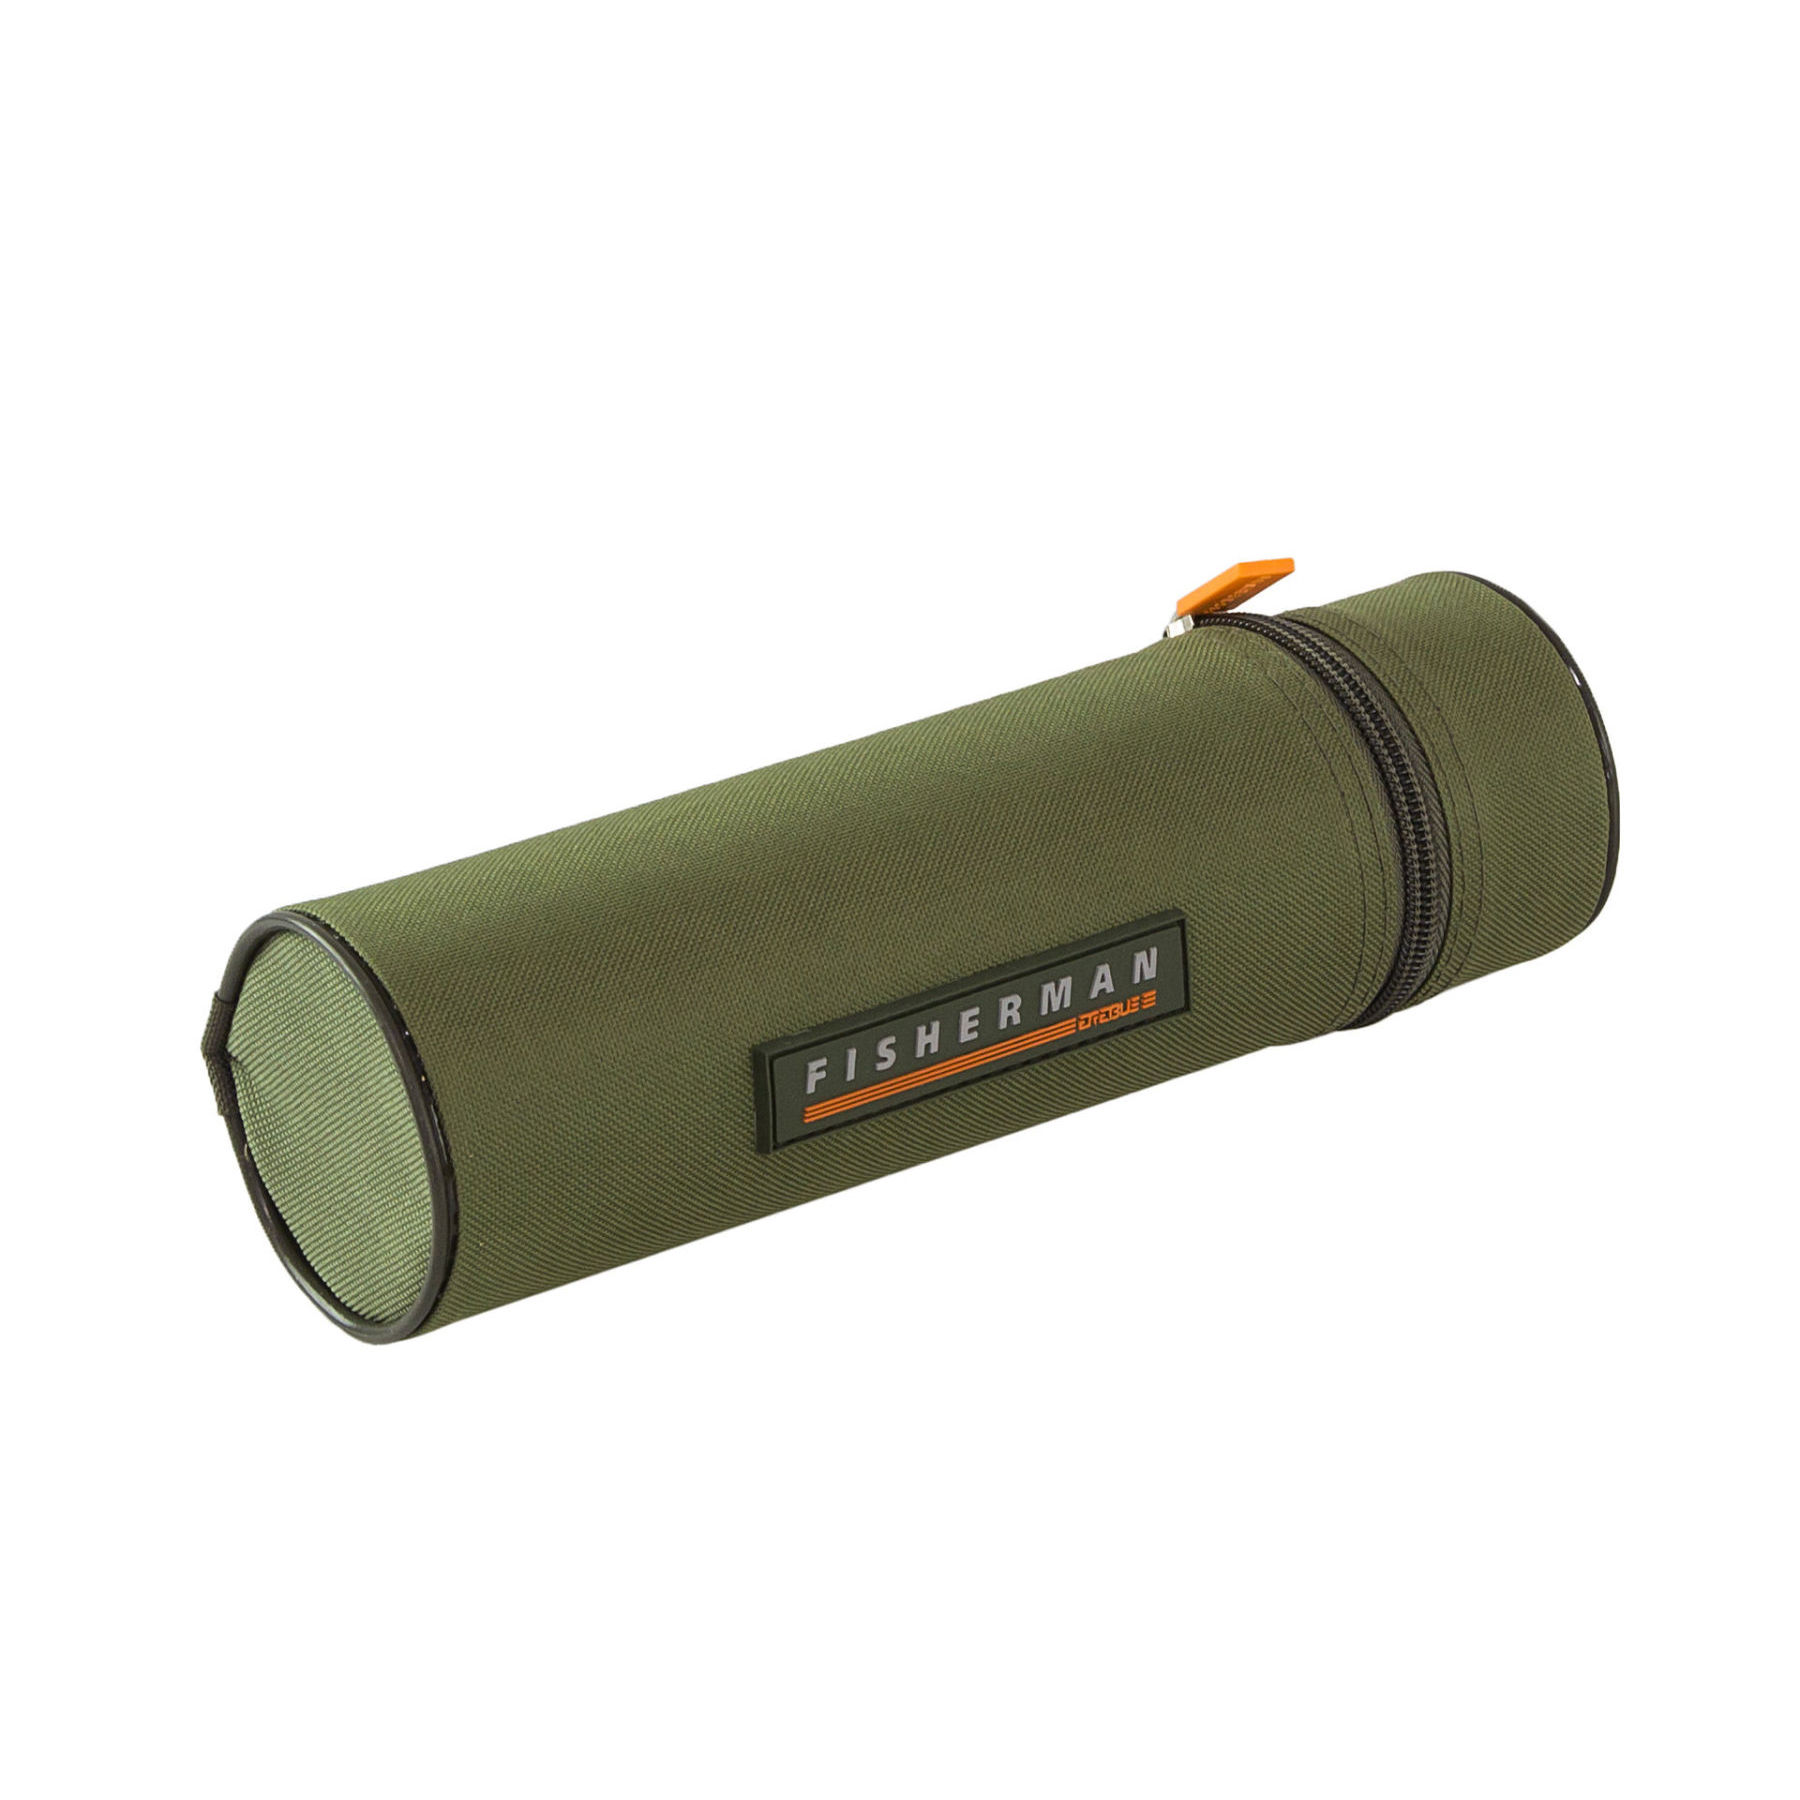 Cover-tube For Floats 7.5x20 Cm, Small F17m